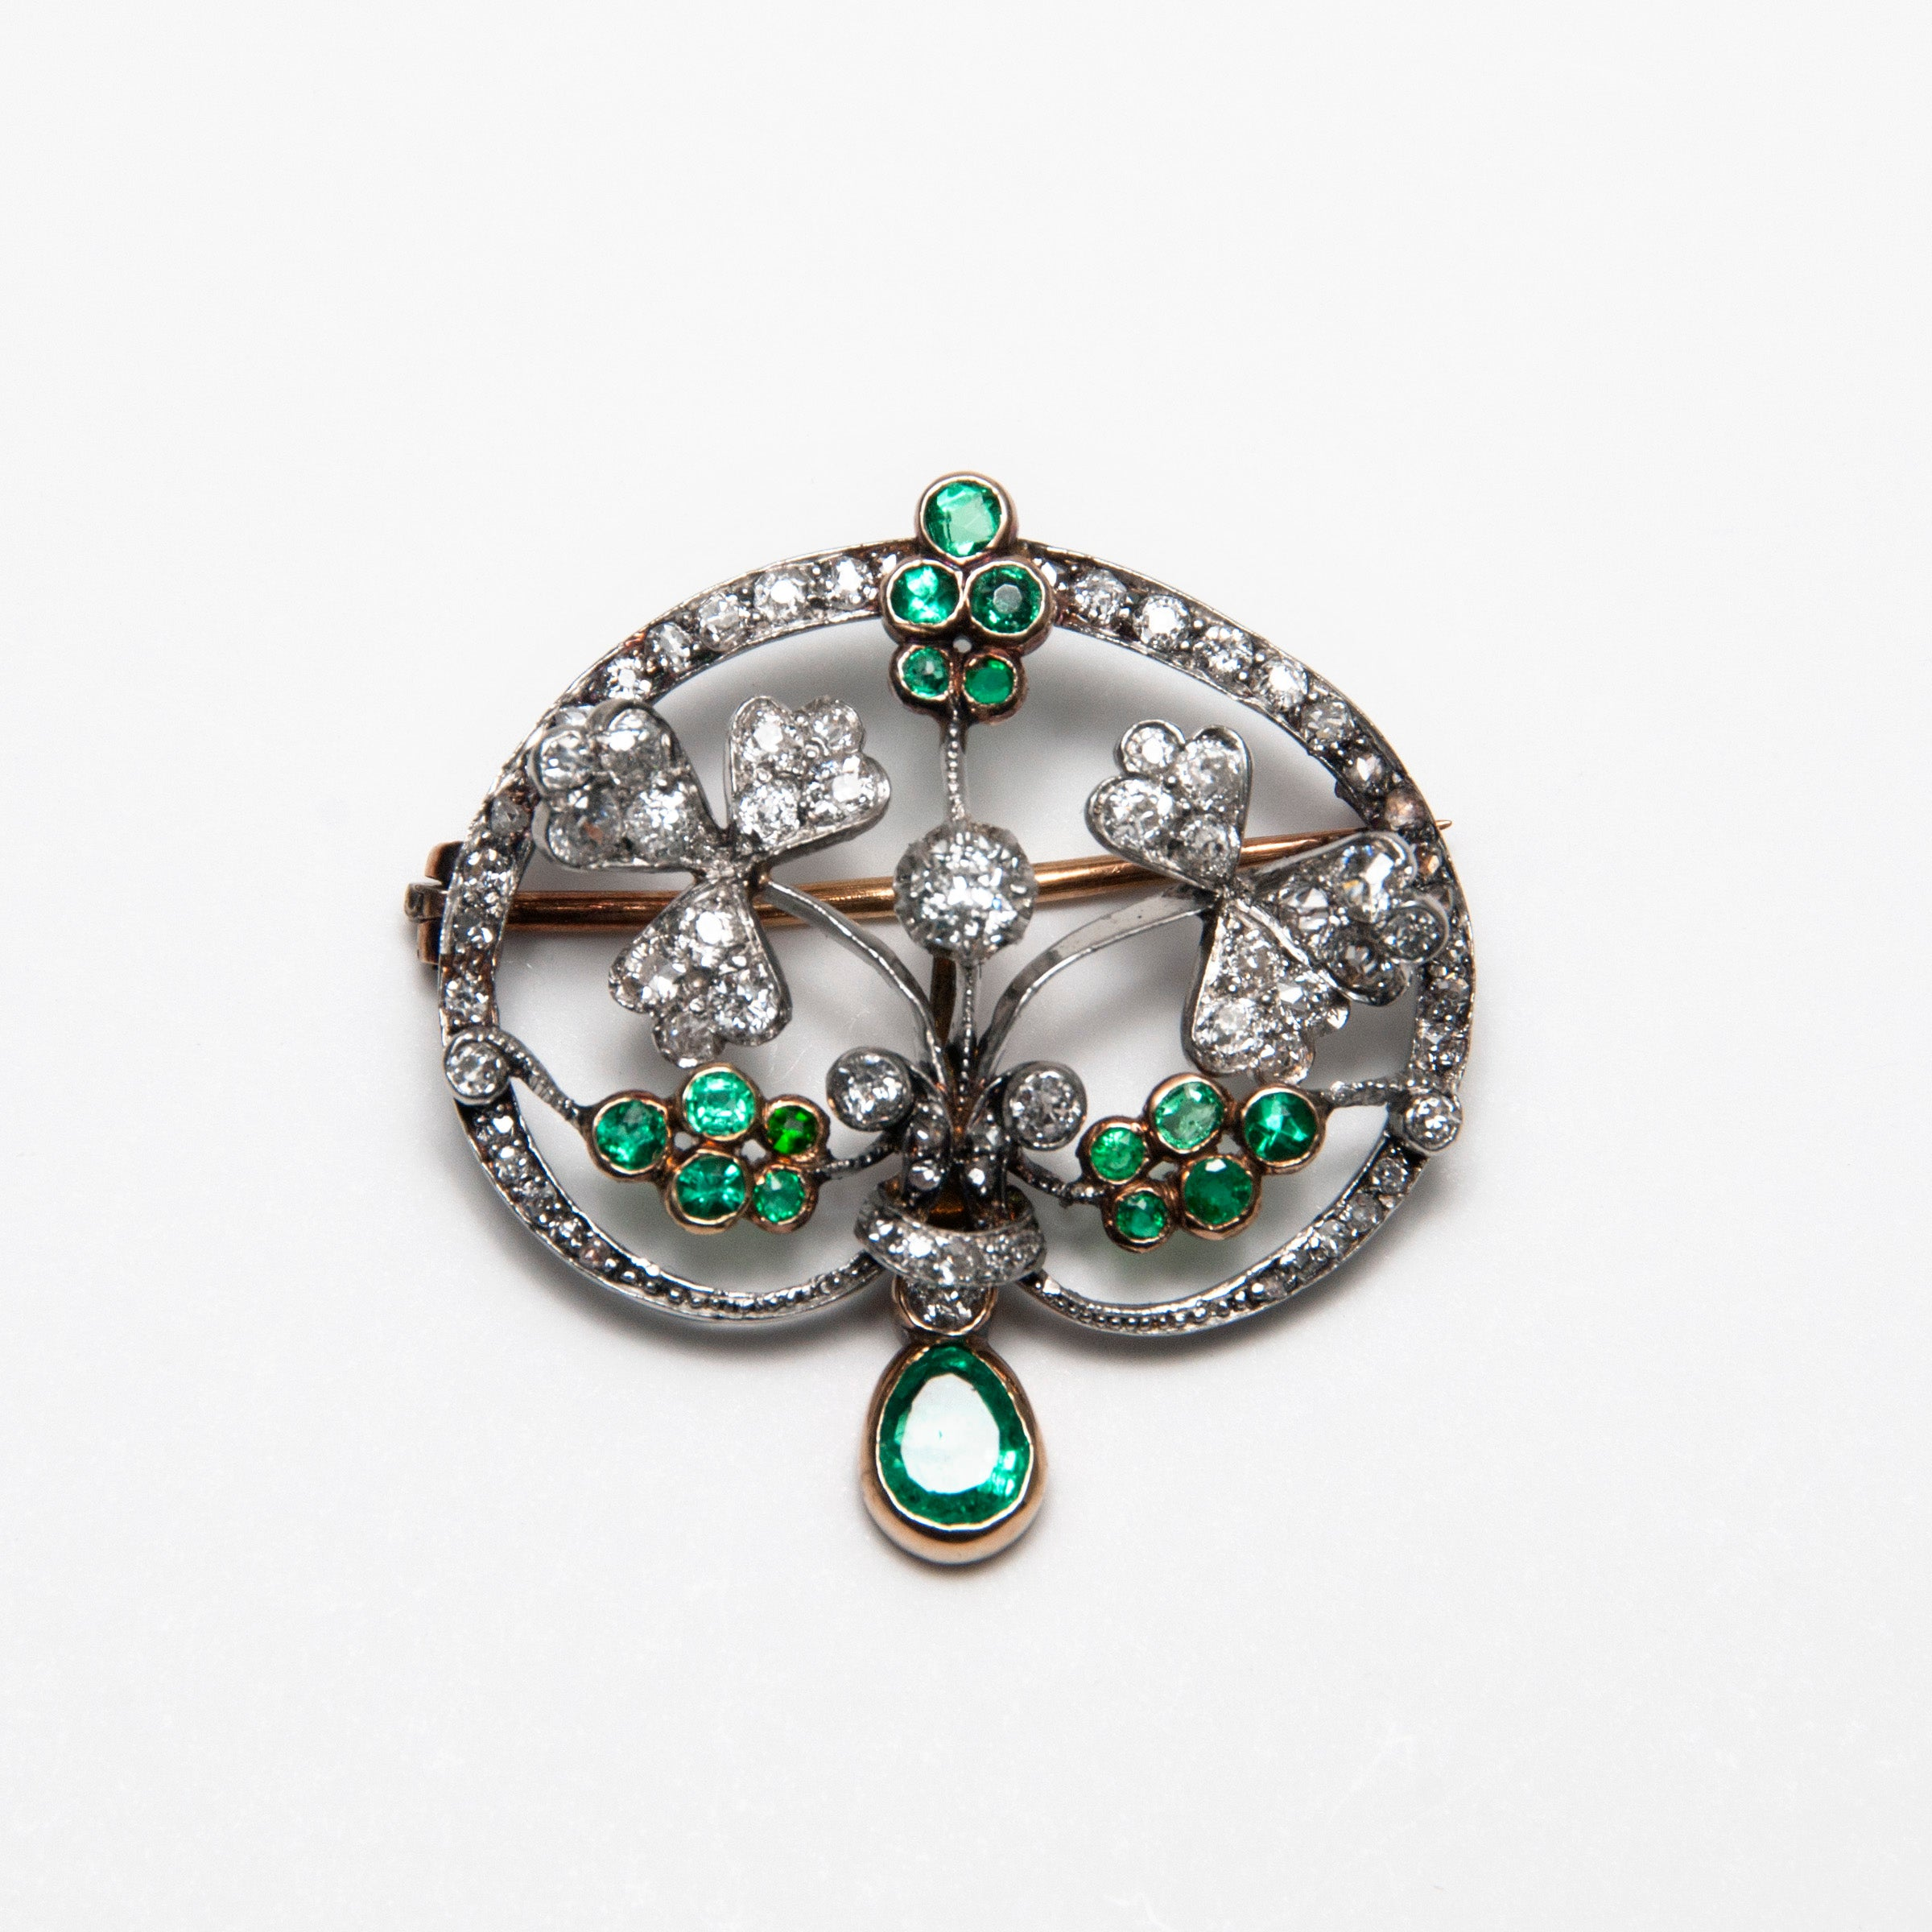 Antique Floral Pin with Diamonds and Emeralds, Platinum and 18K Gold